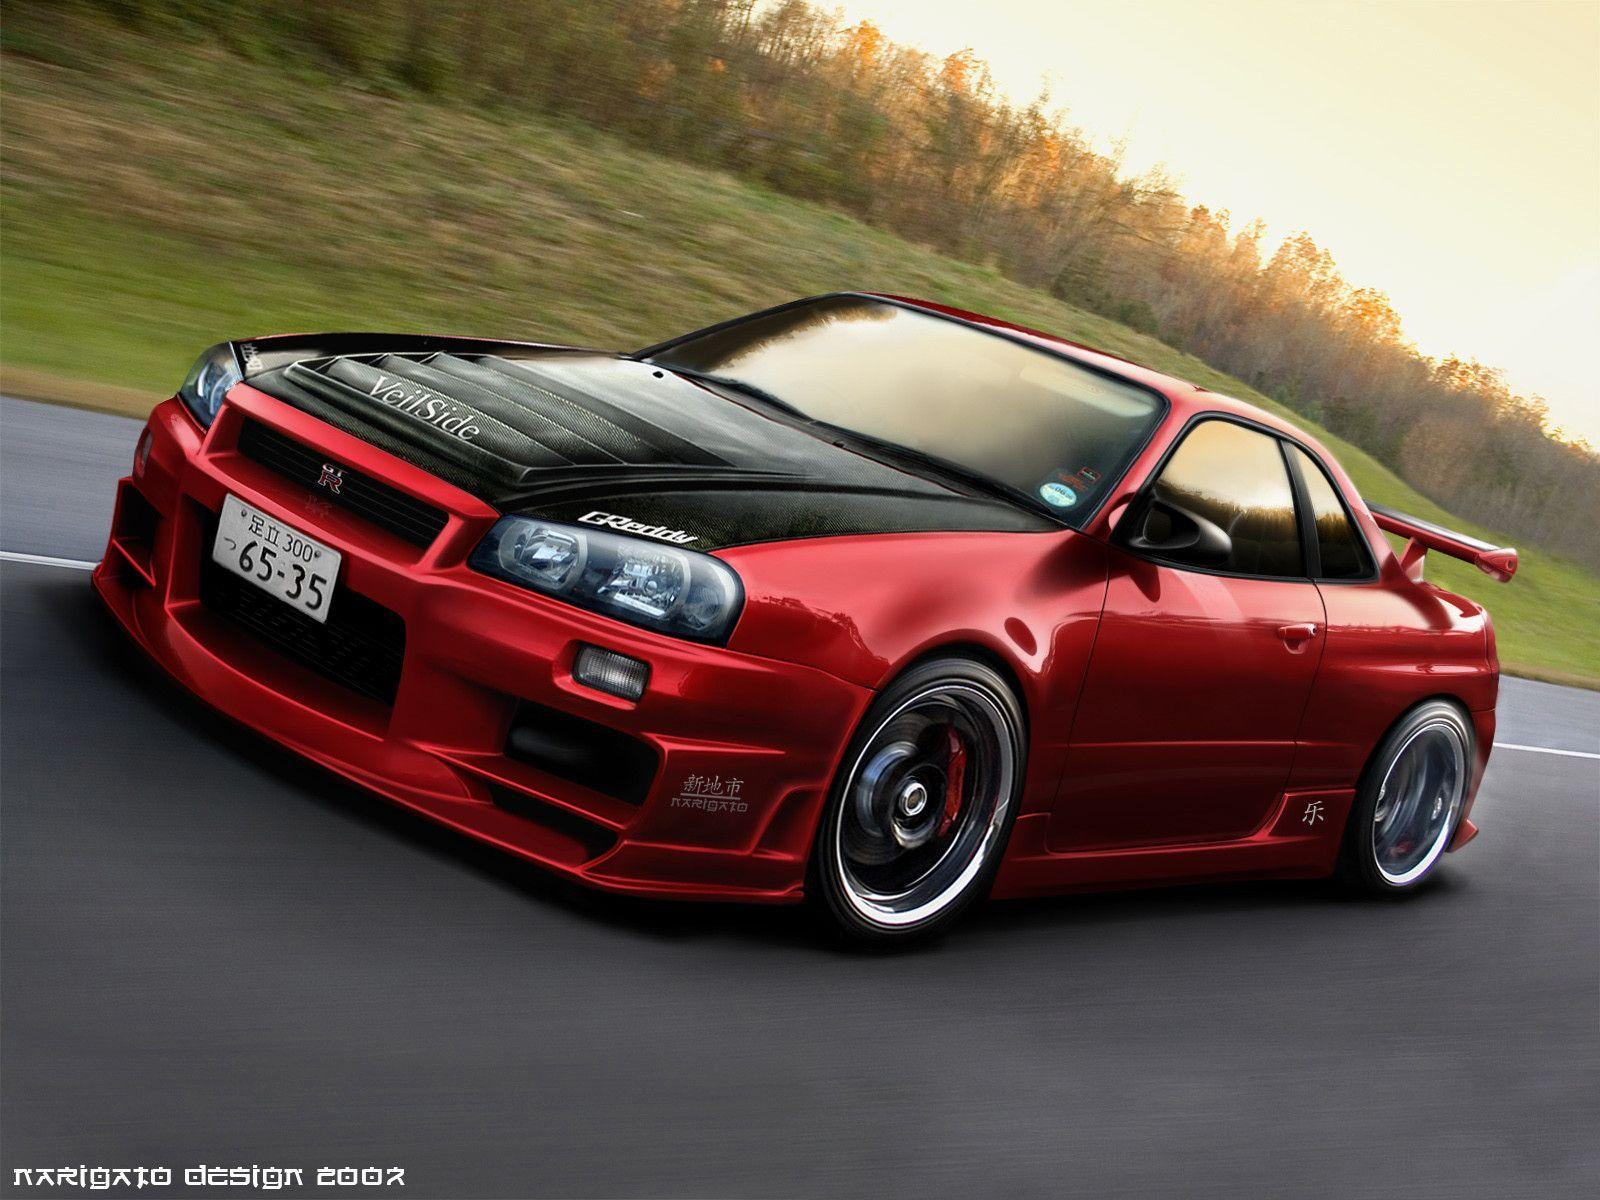 R34 skyline wallpapers wallpaper cave - Nissan skyline background ...